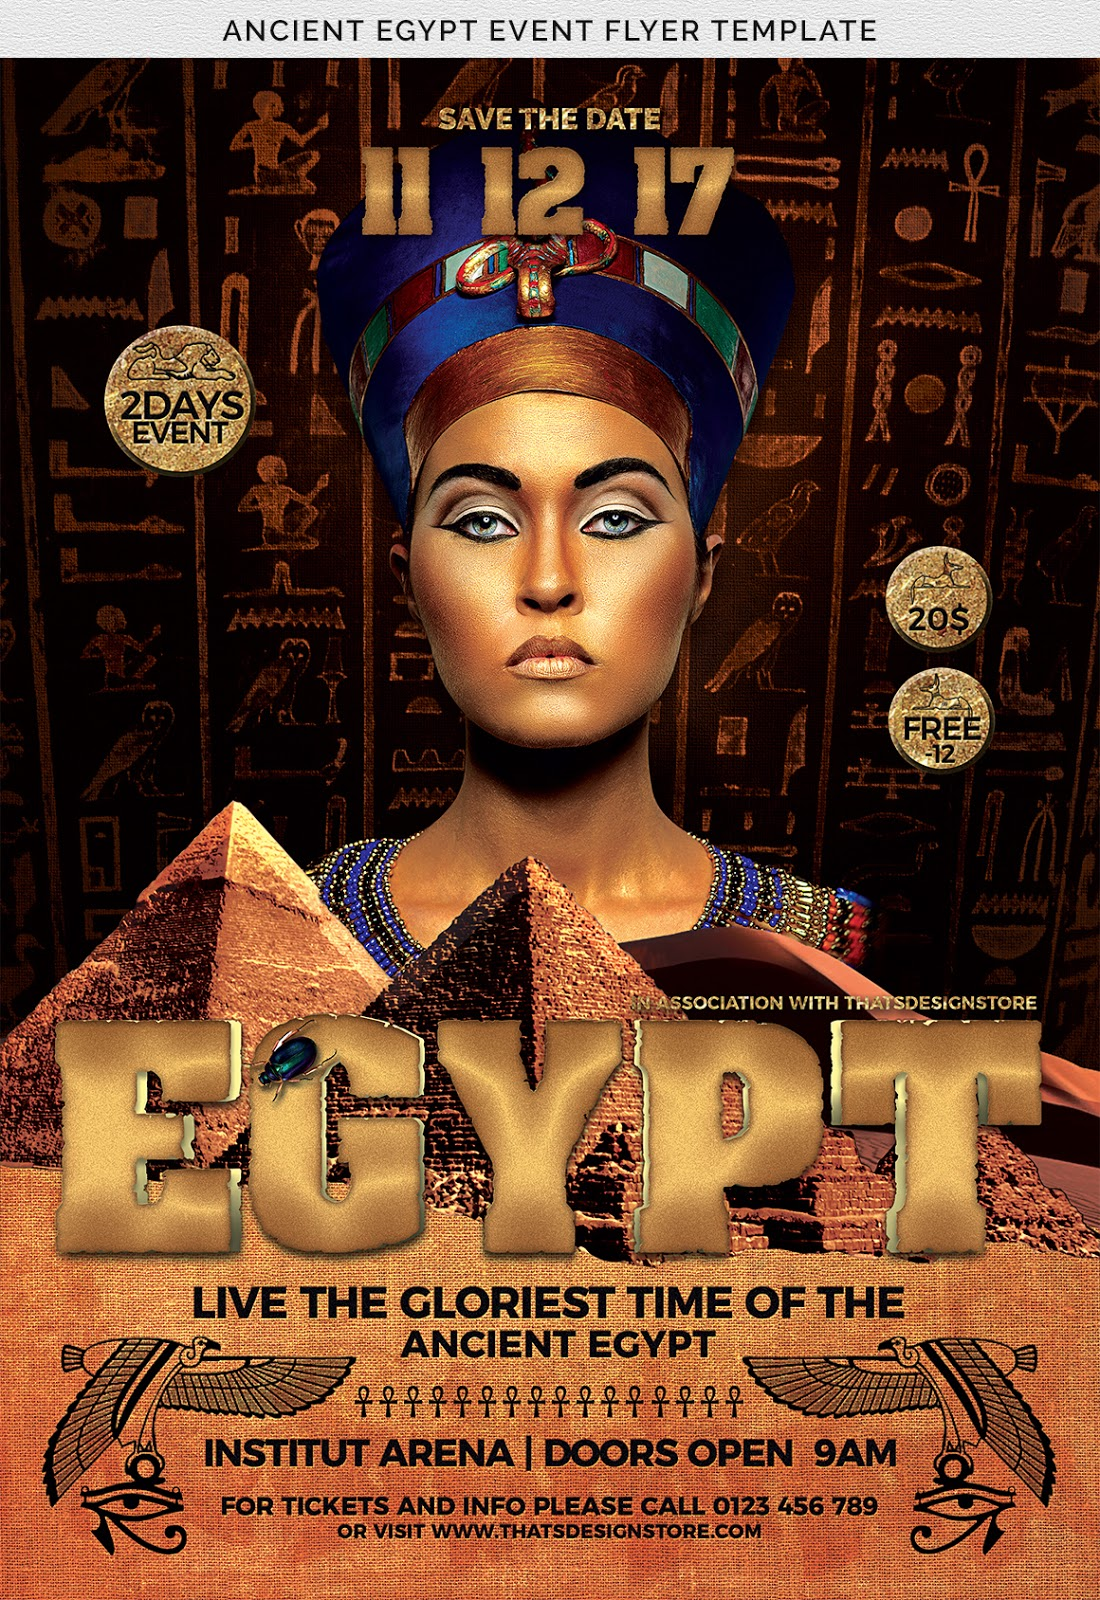 Flyer psd is special for tourism and ancient Egyptian Pharaonic civilization